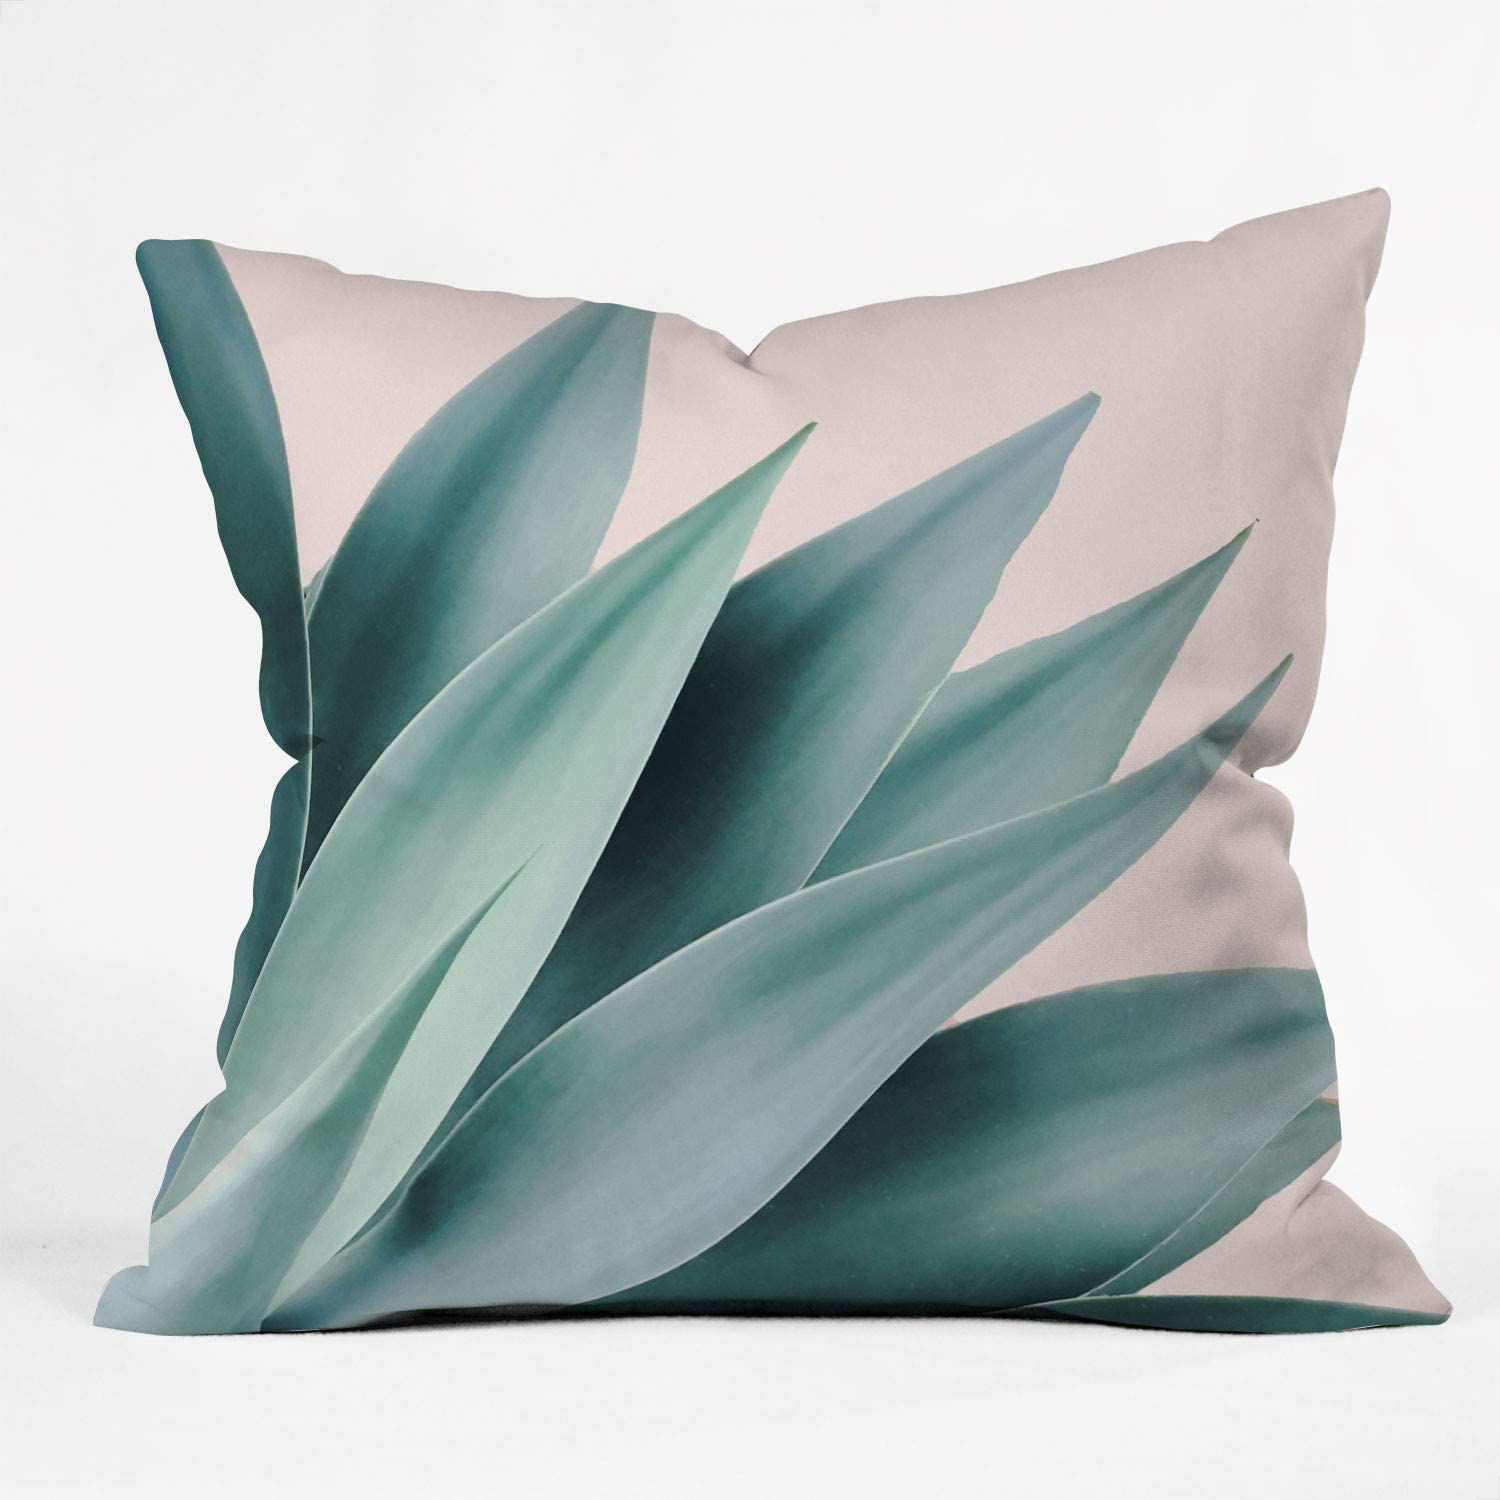 Society6 Gale Switzer Agave Flare II Peach specialty shop 1 Al sold out. 18